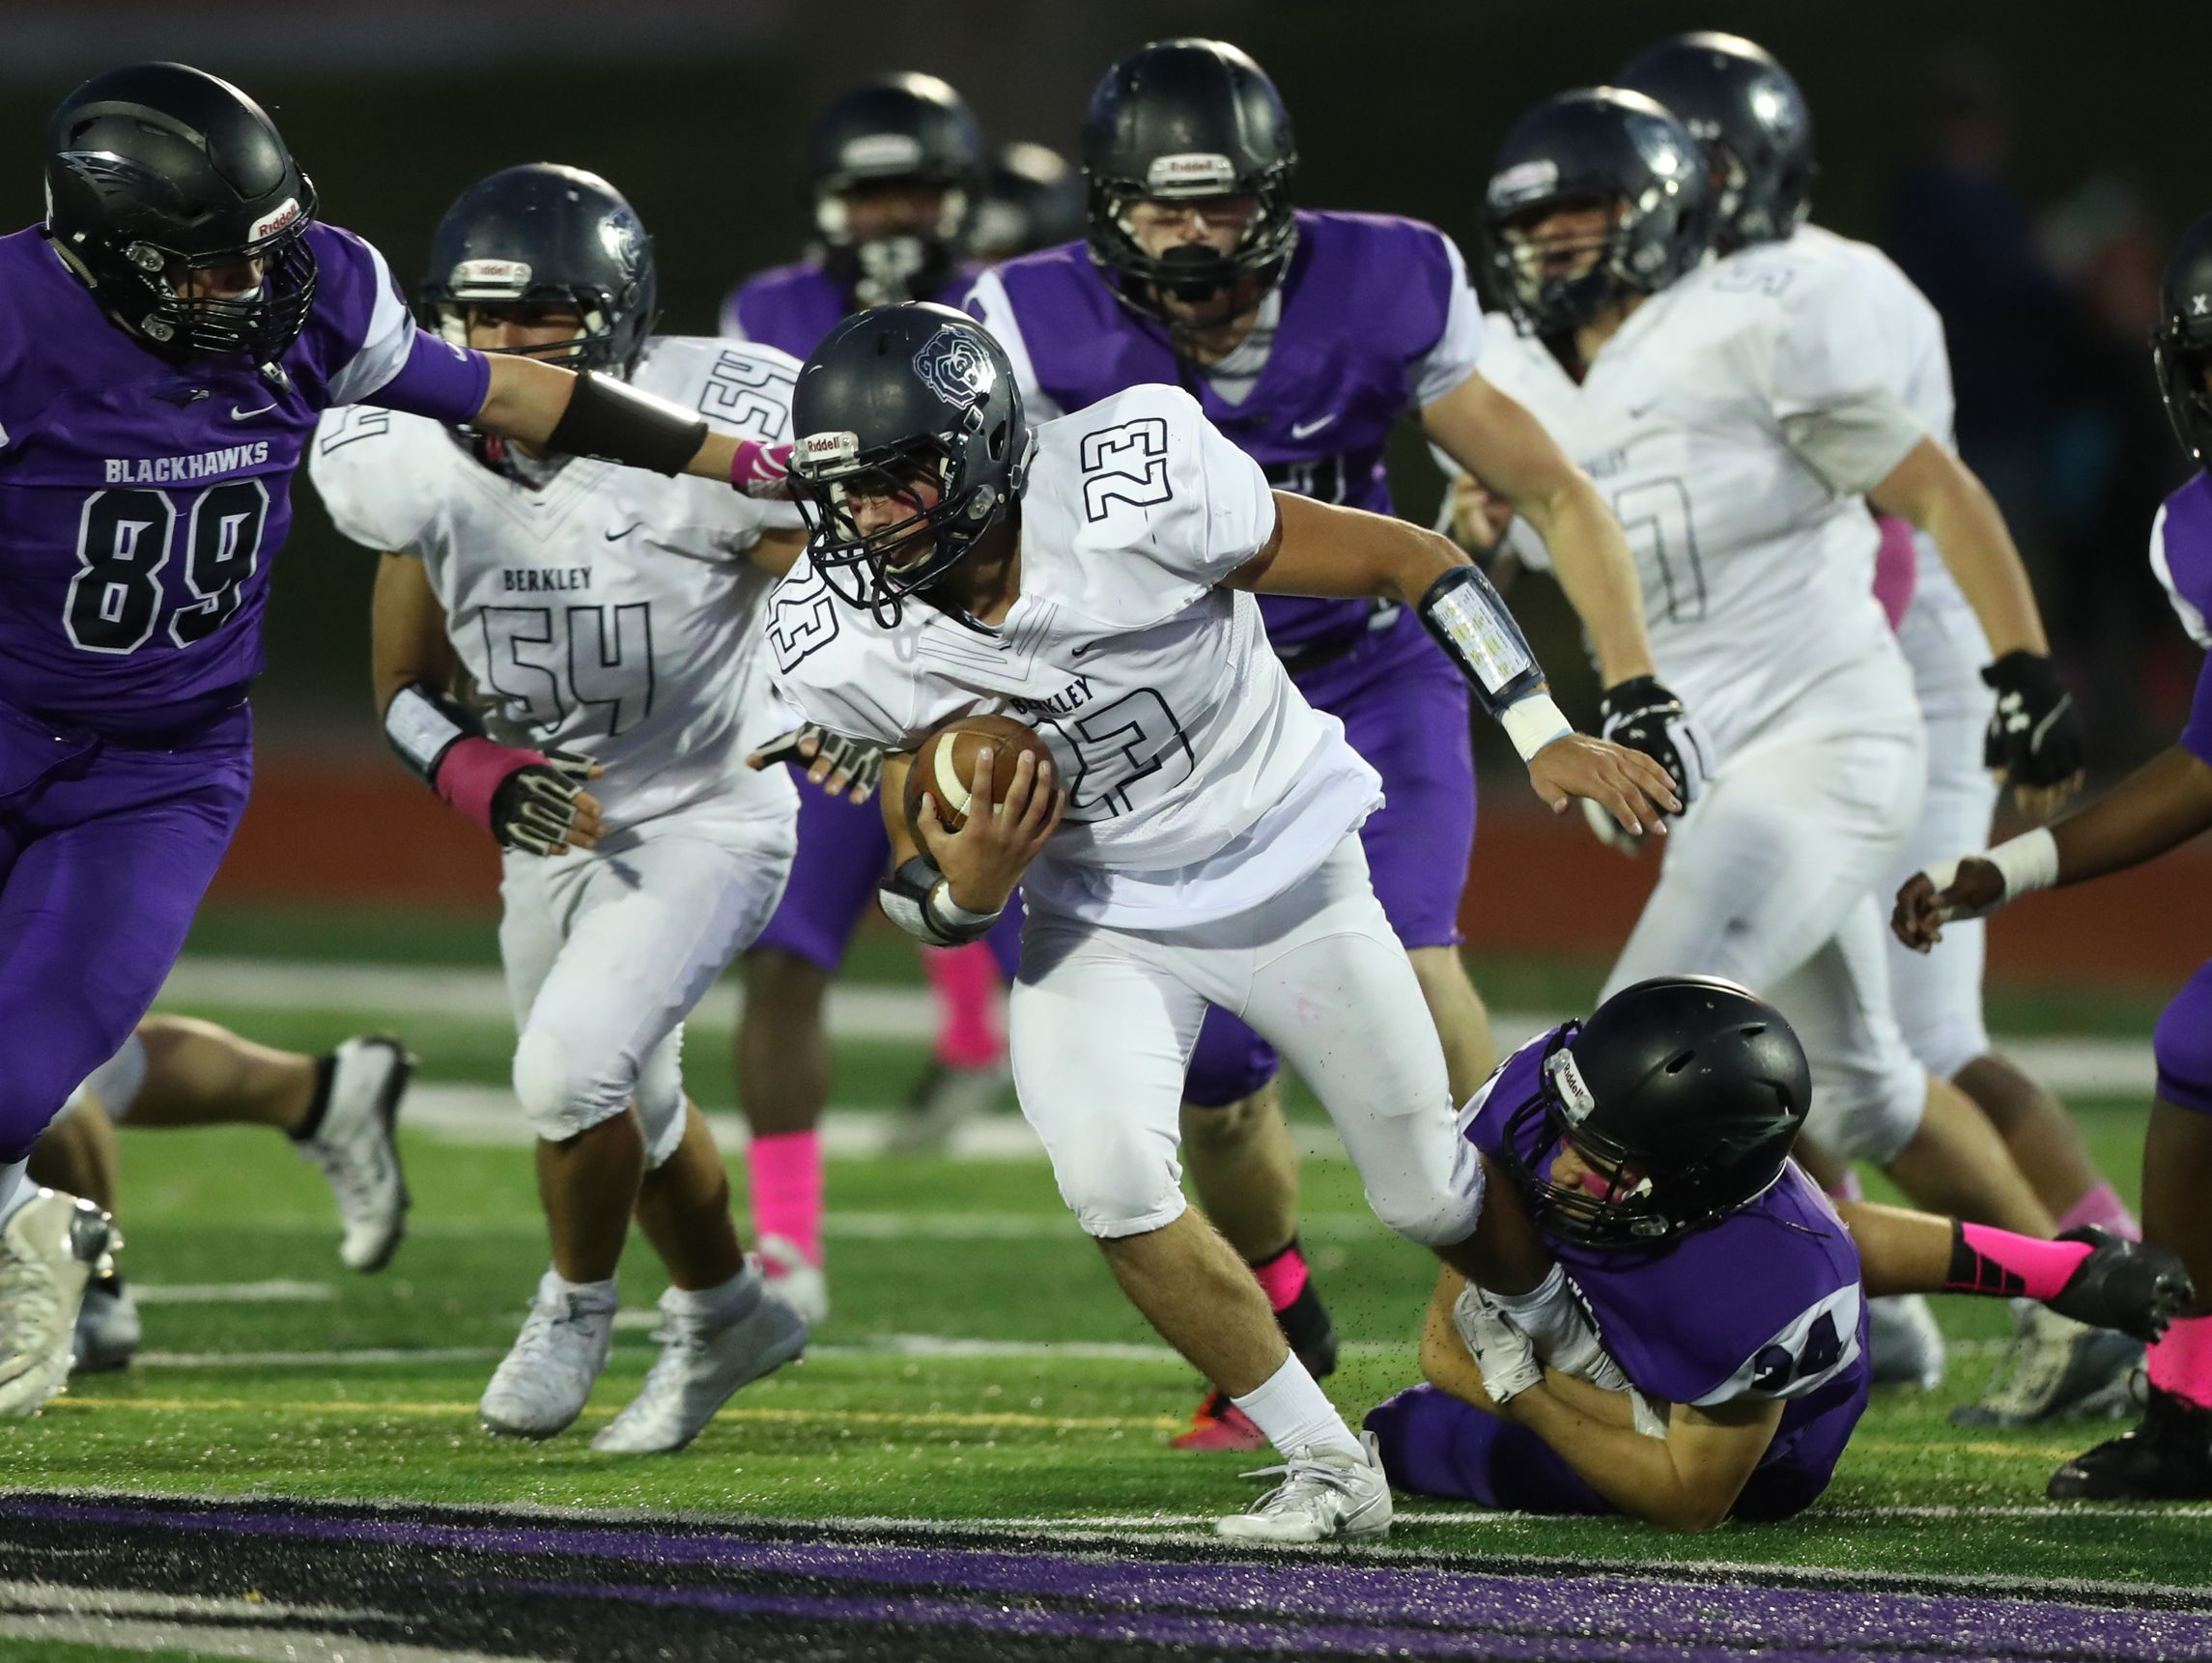 Bloomfield Hills' Patrick Najor tackles a Berkley ballcarrier during Bloomfield Hills' 42-16 win Friday at West Bloomfield.